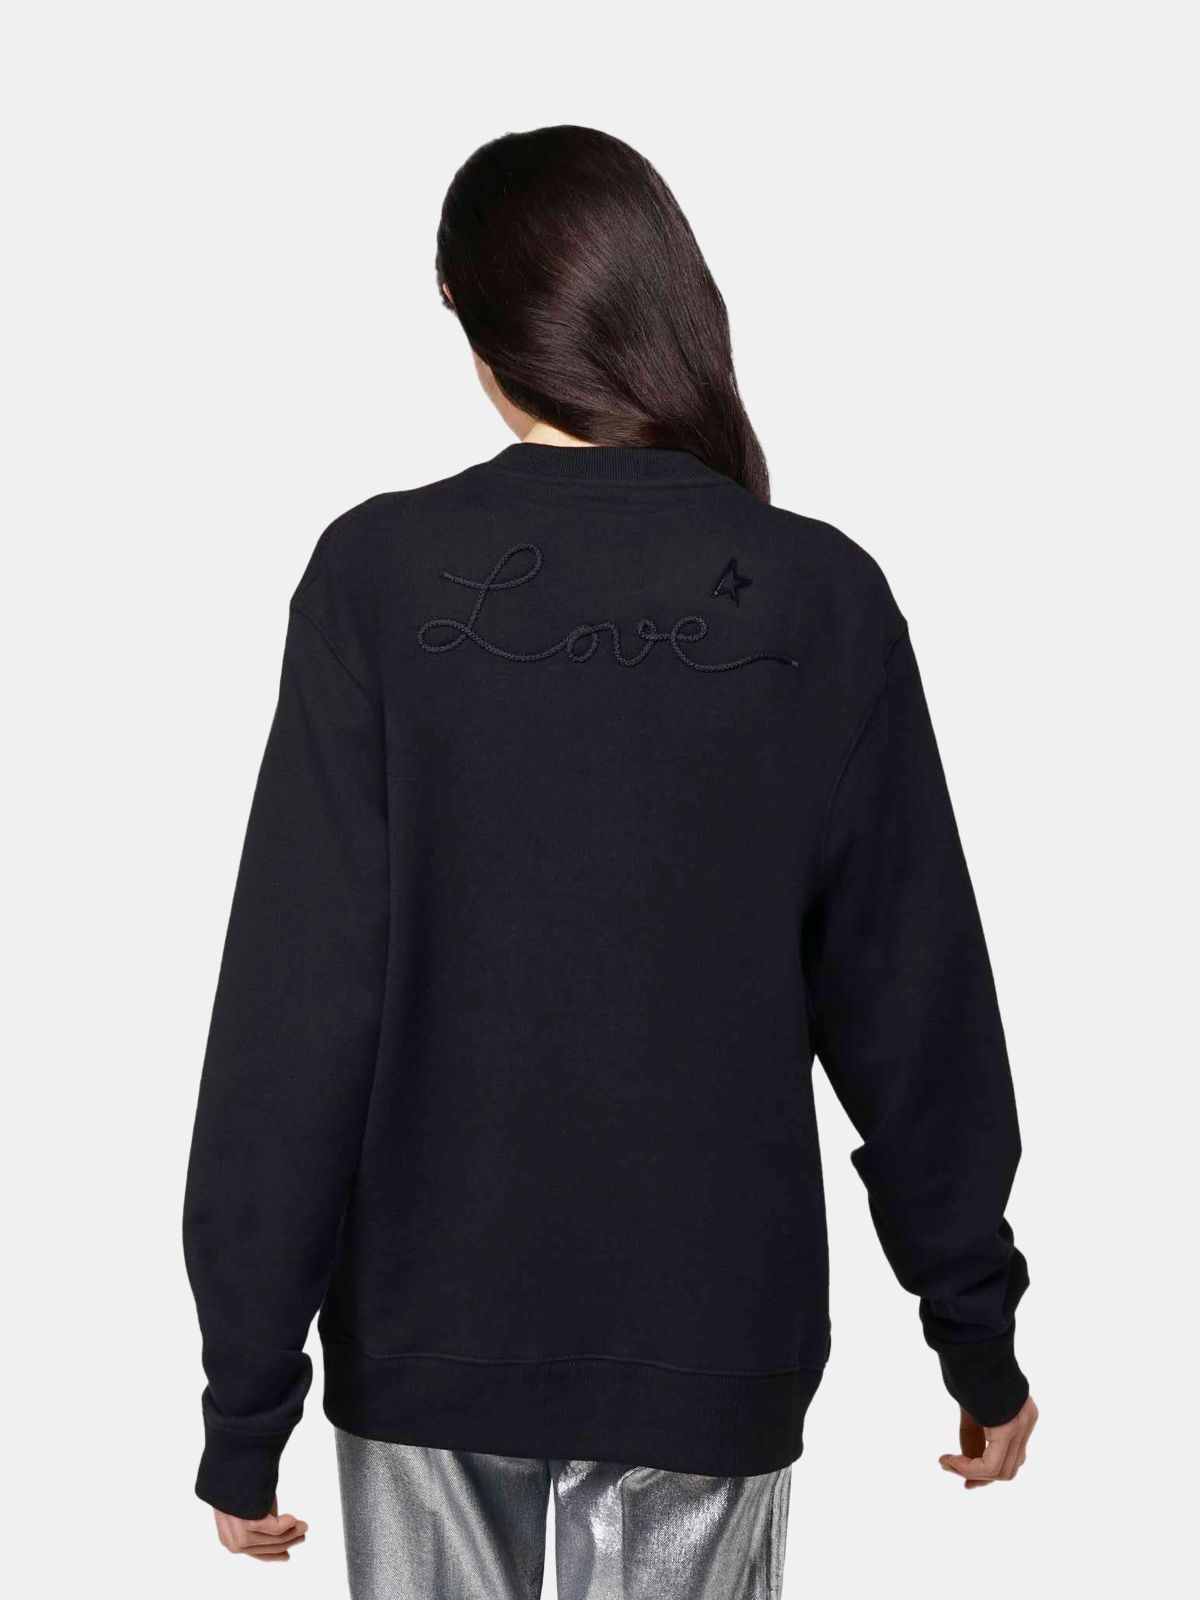 Golden Goose - Black Robbie sweatshirt with Love embroidery in